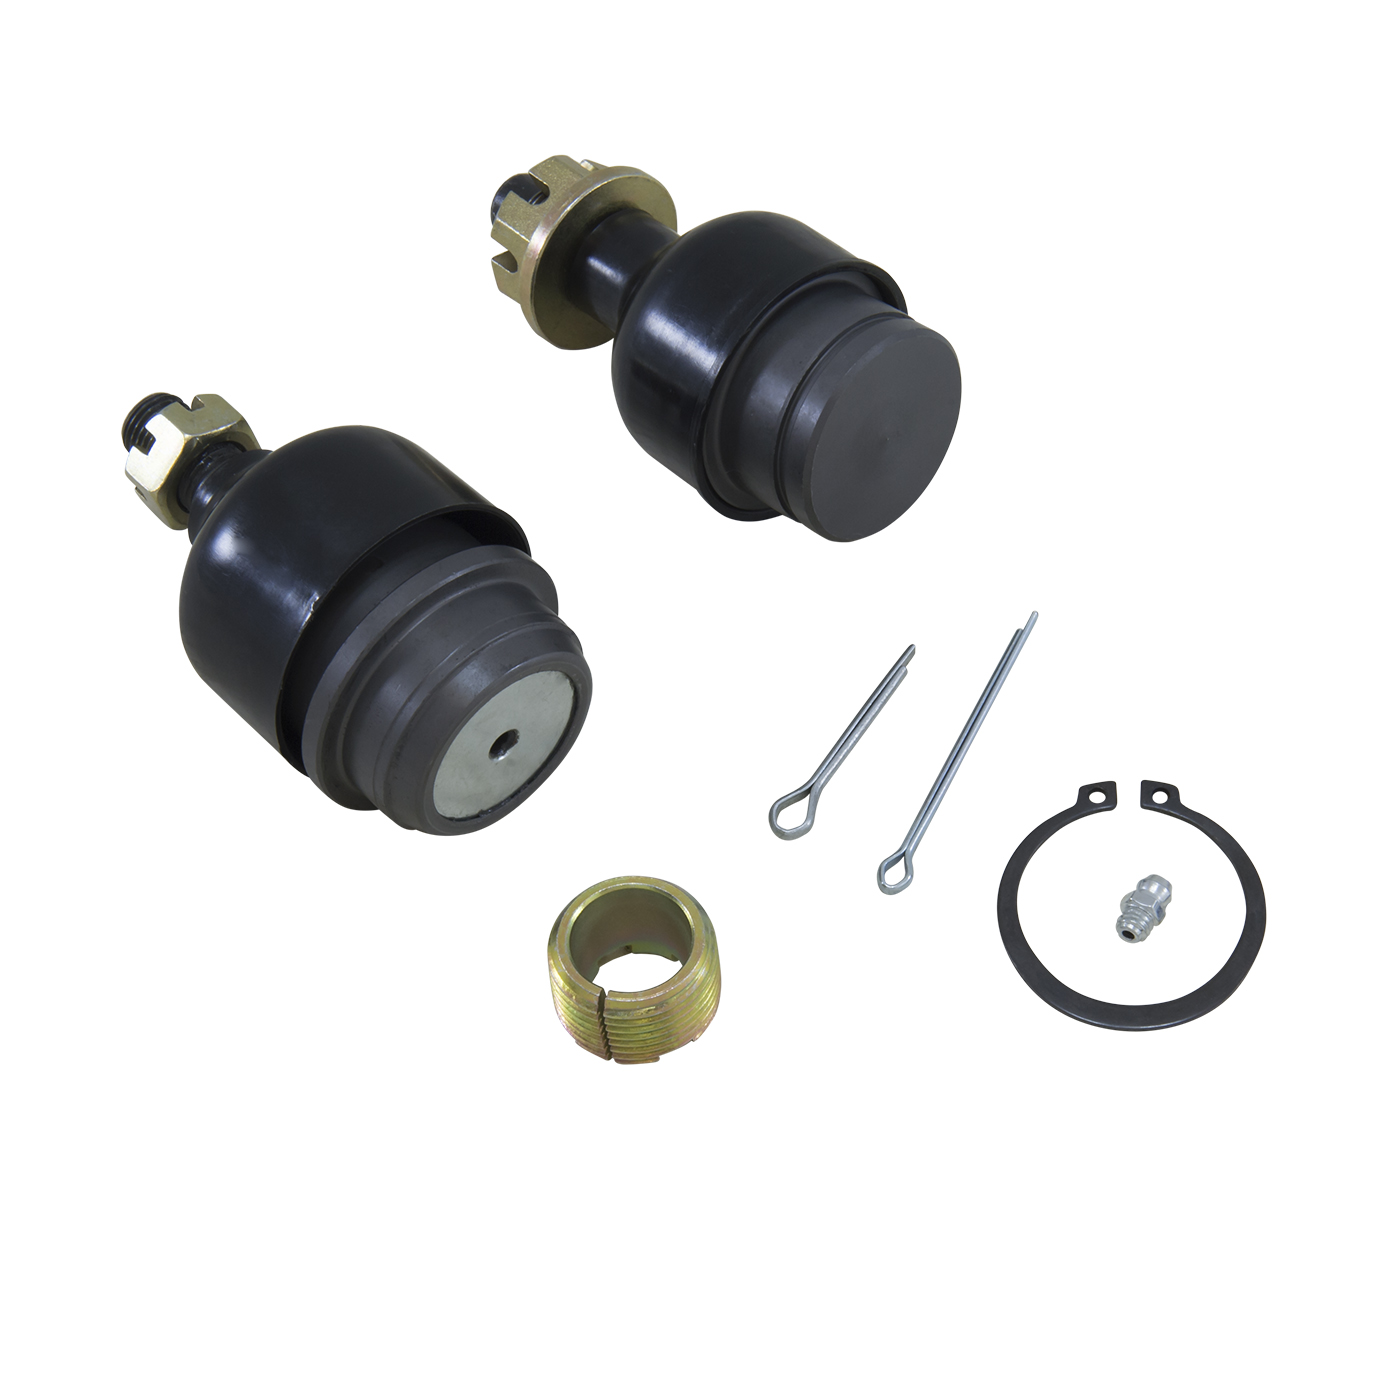 YSPBJ-001 - Ball Joint kit for Jeep JK 30 & 44 front, one side